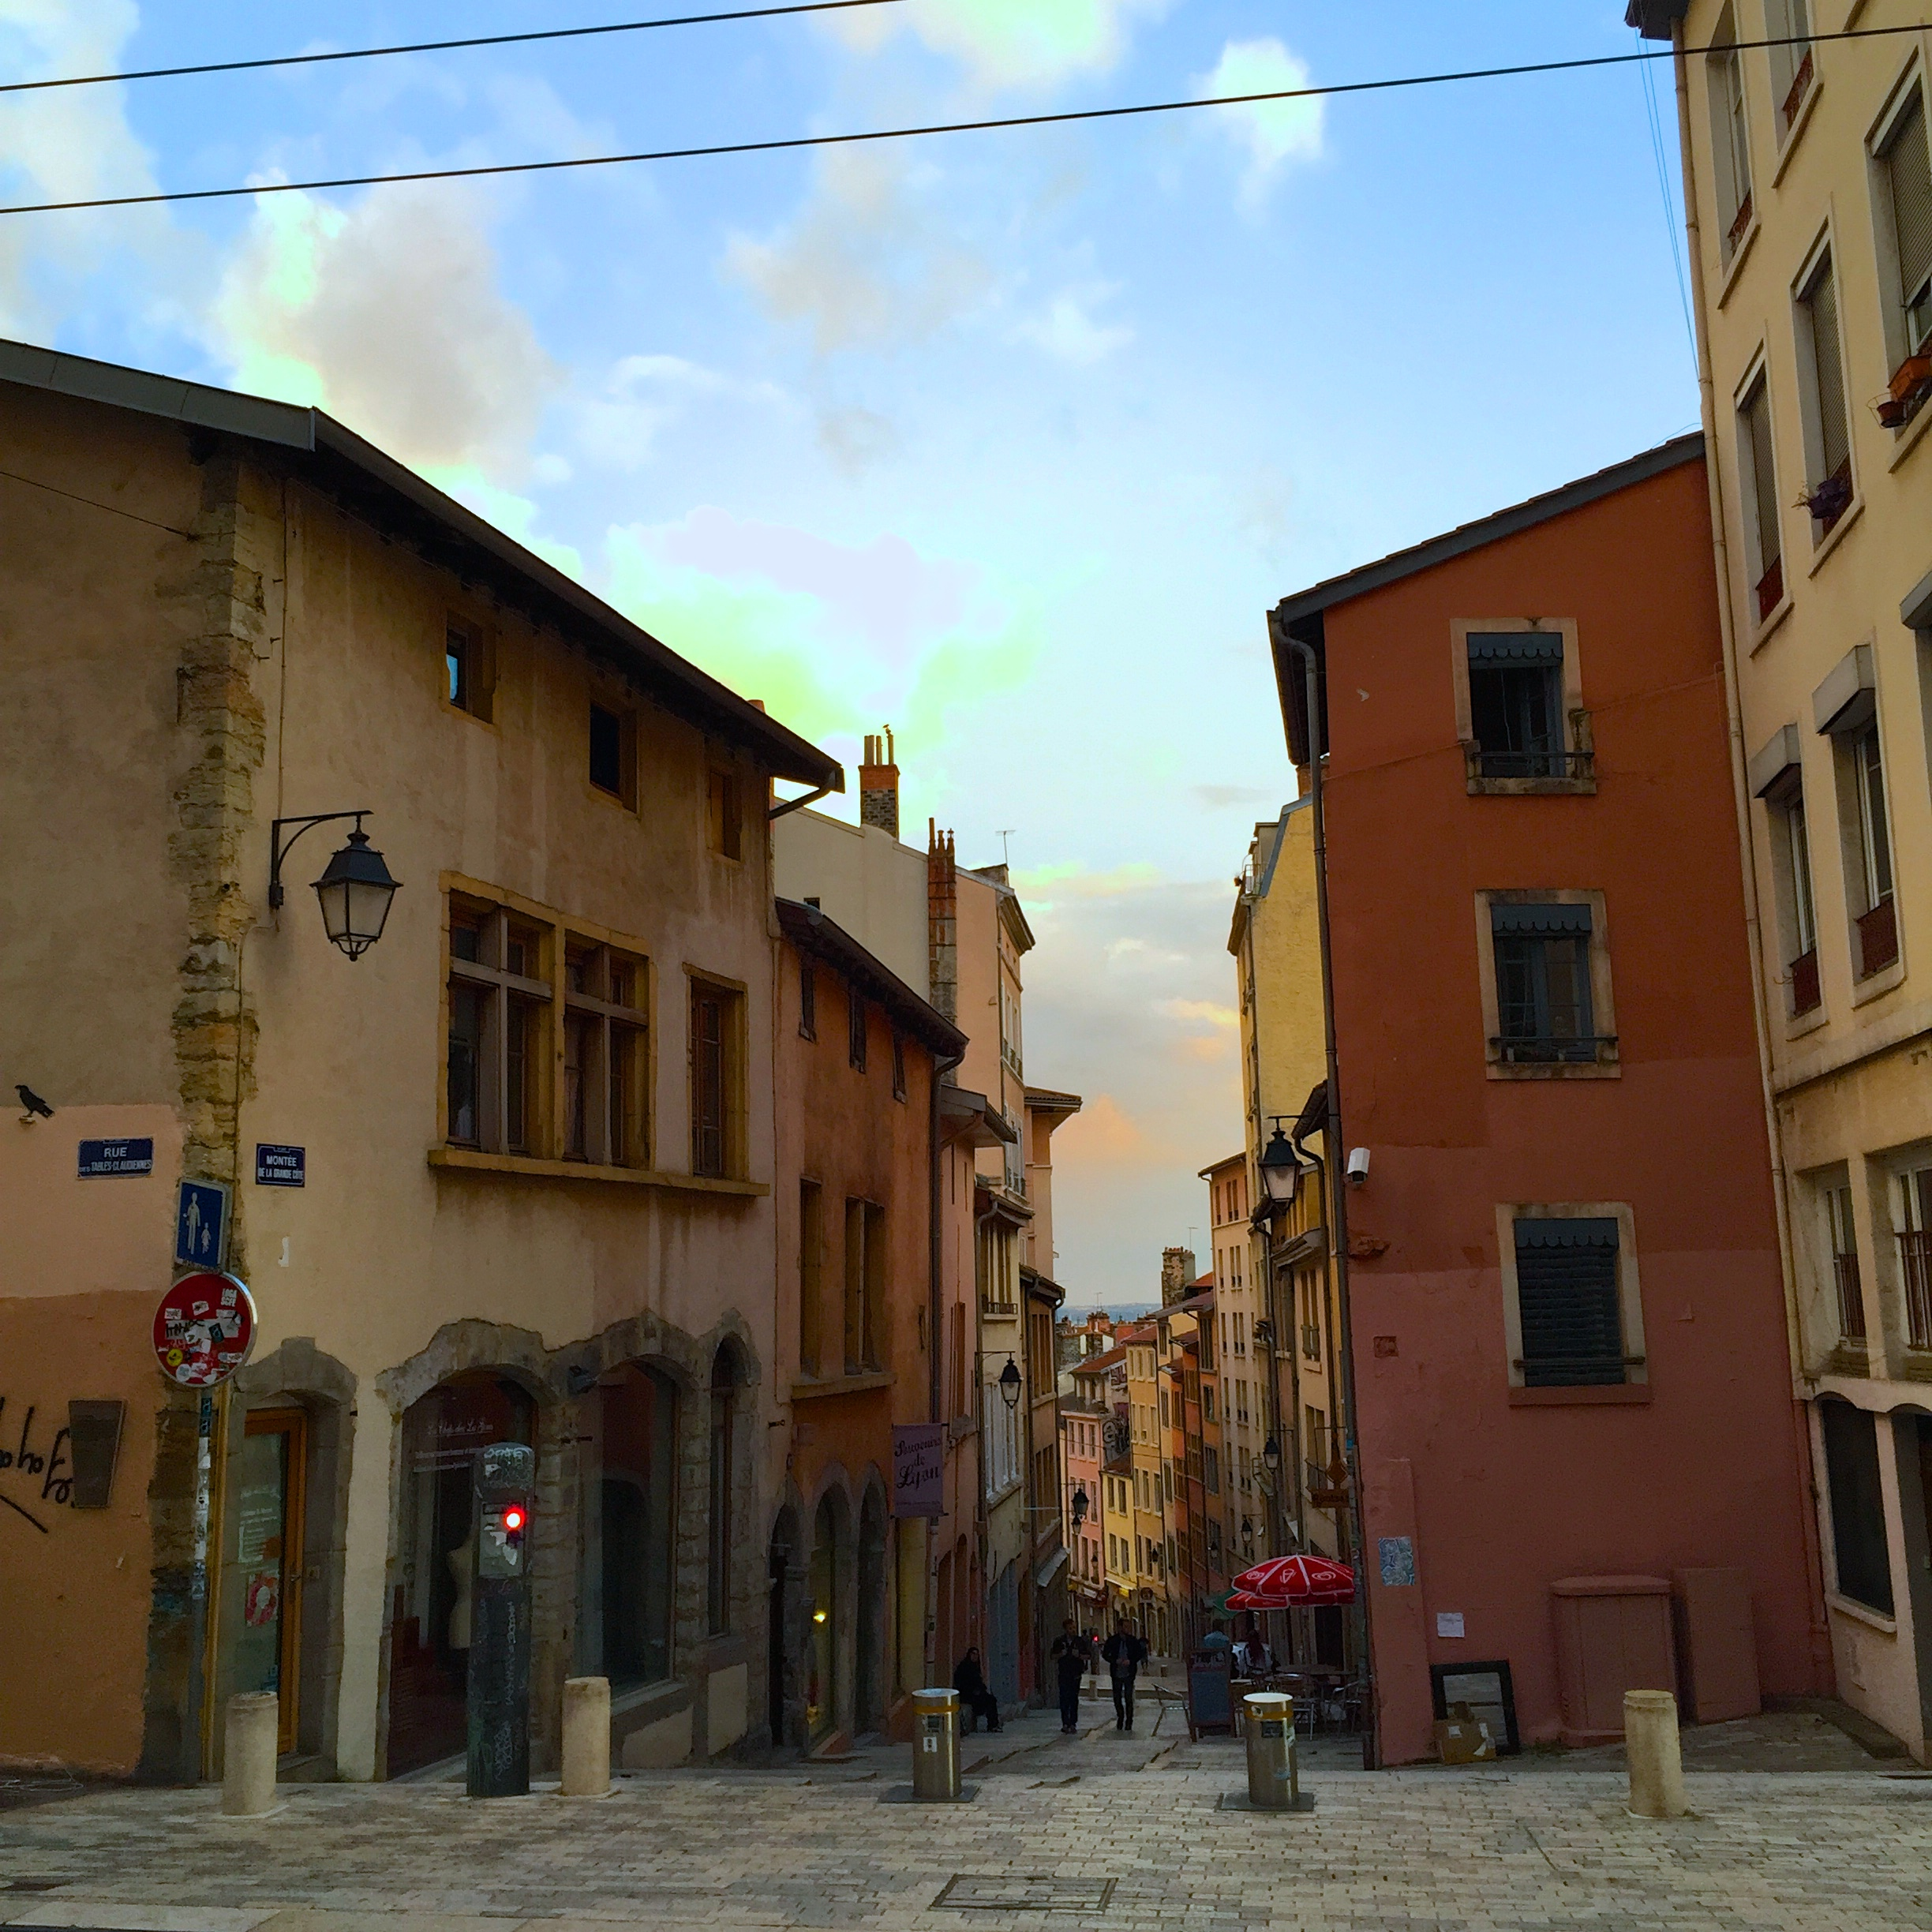 Apartments along the colorful streets of Croix Rousse, Lyon, France